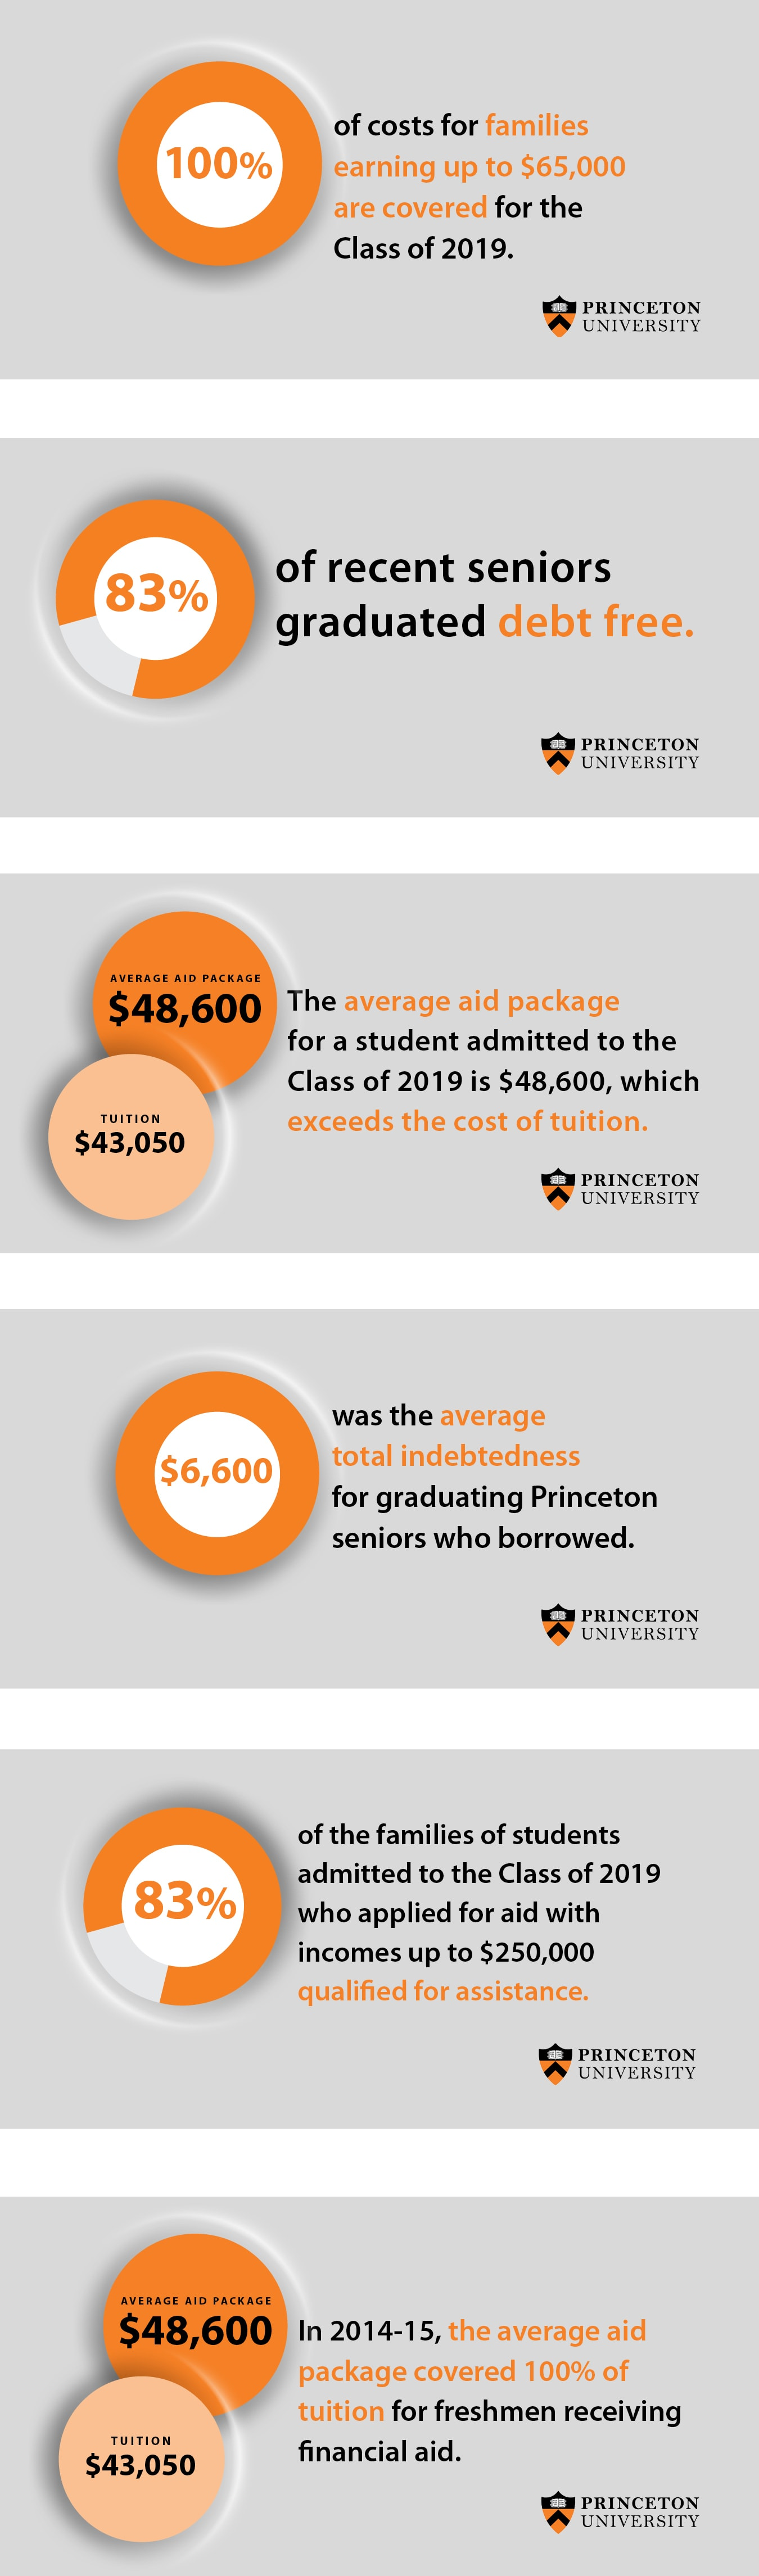 princeton admission essay The requirements: 2 short answers, 1 list, and 1 longer essay supplemental essay type(s): short answer, activity, oddball princeton university 2018-19 application essay questions explanation this is princeton, the number one university in the nation.